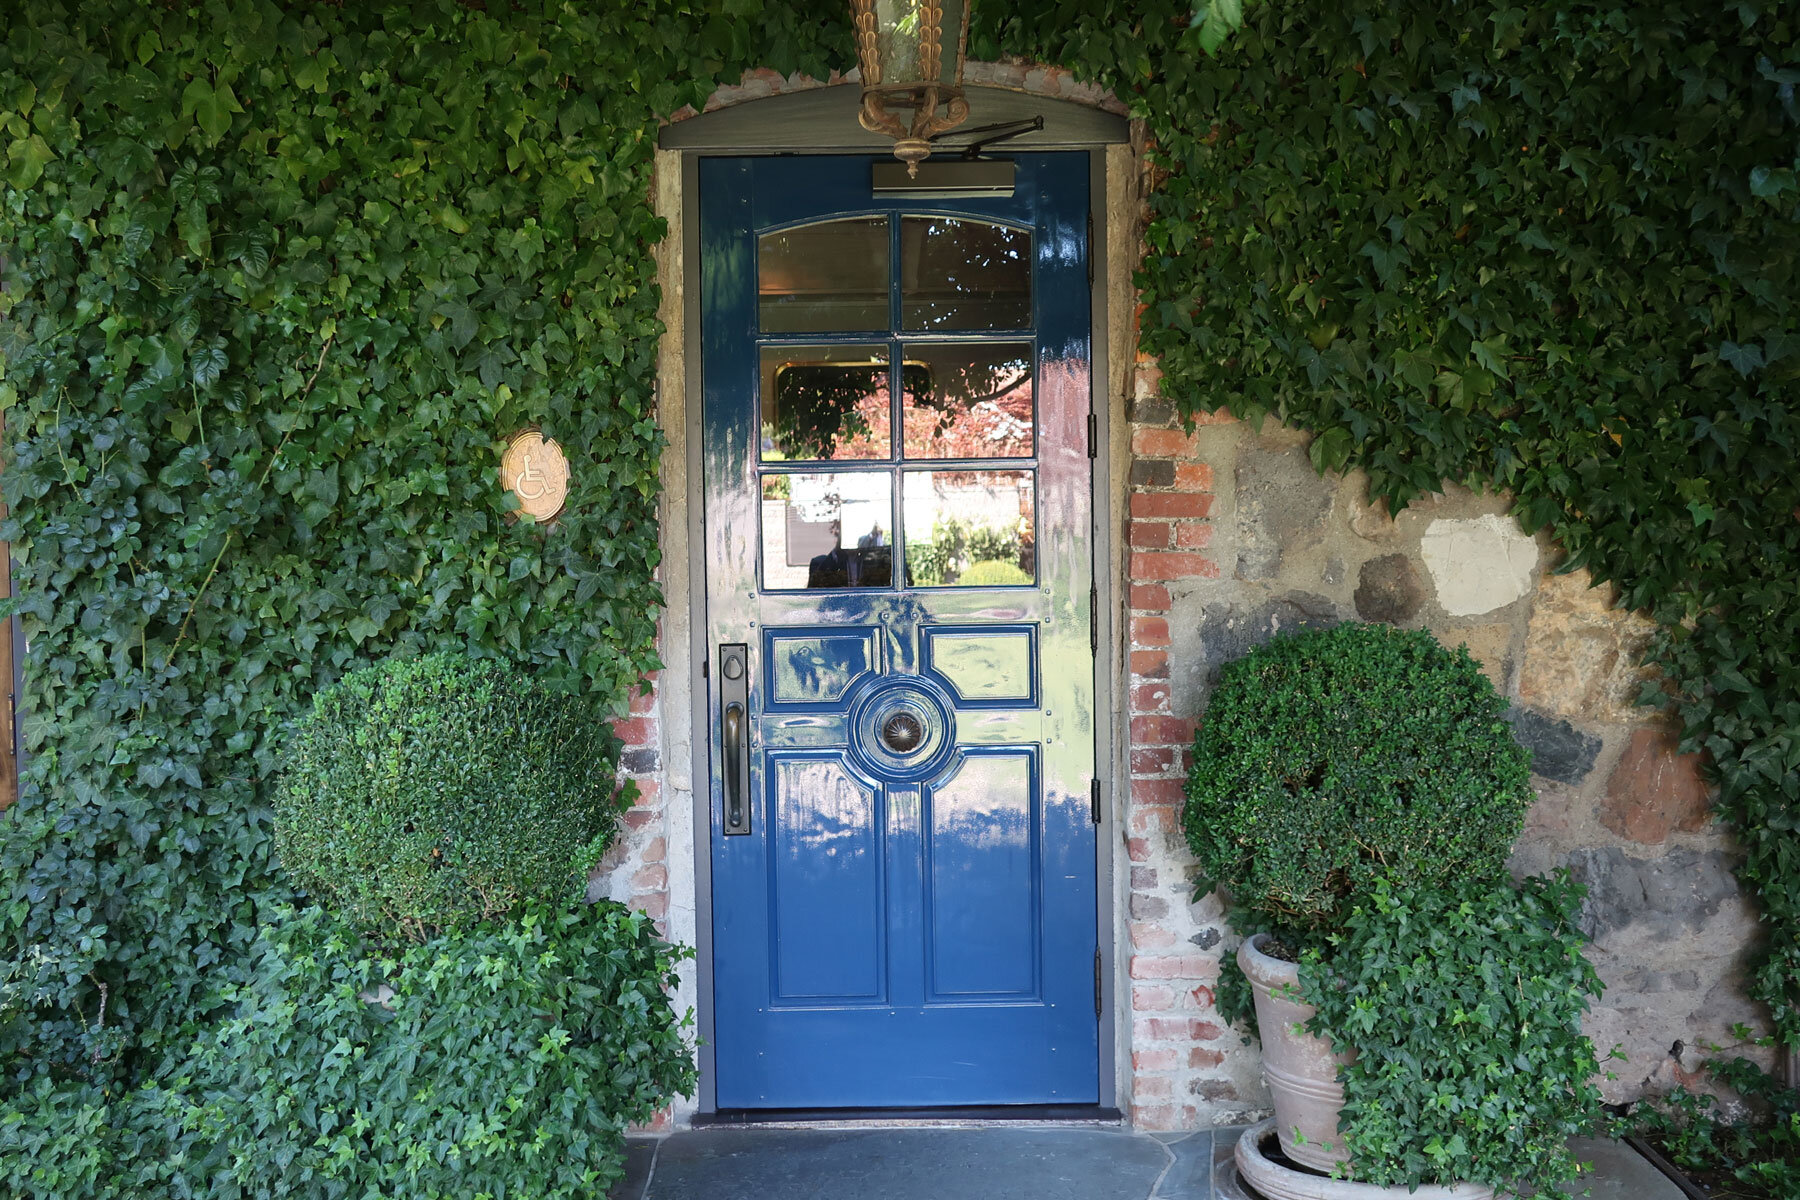 The French Laundry, Napa's most famous restaurant